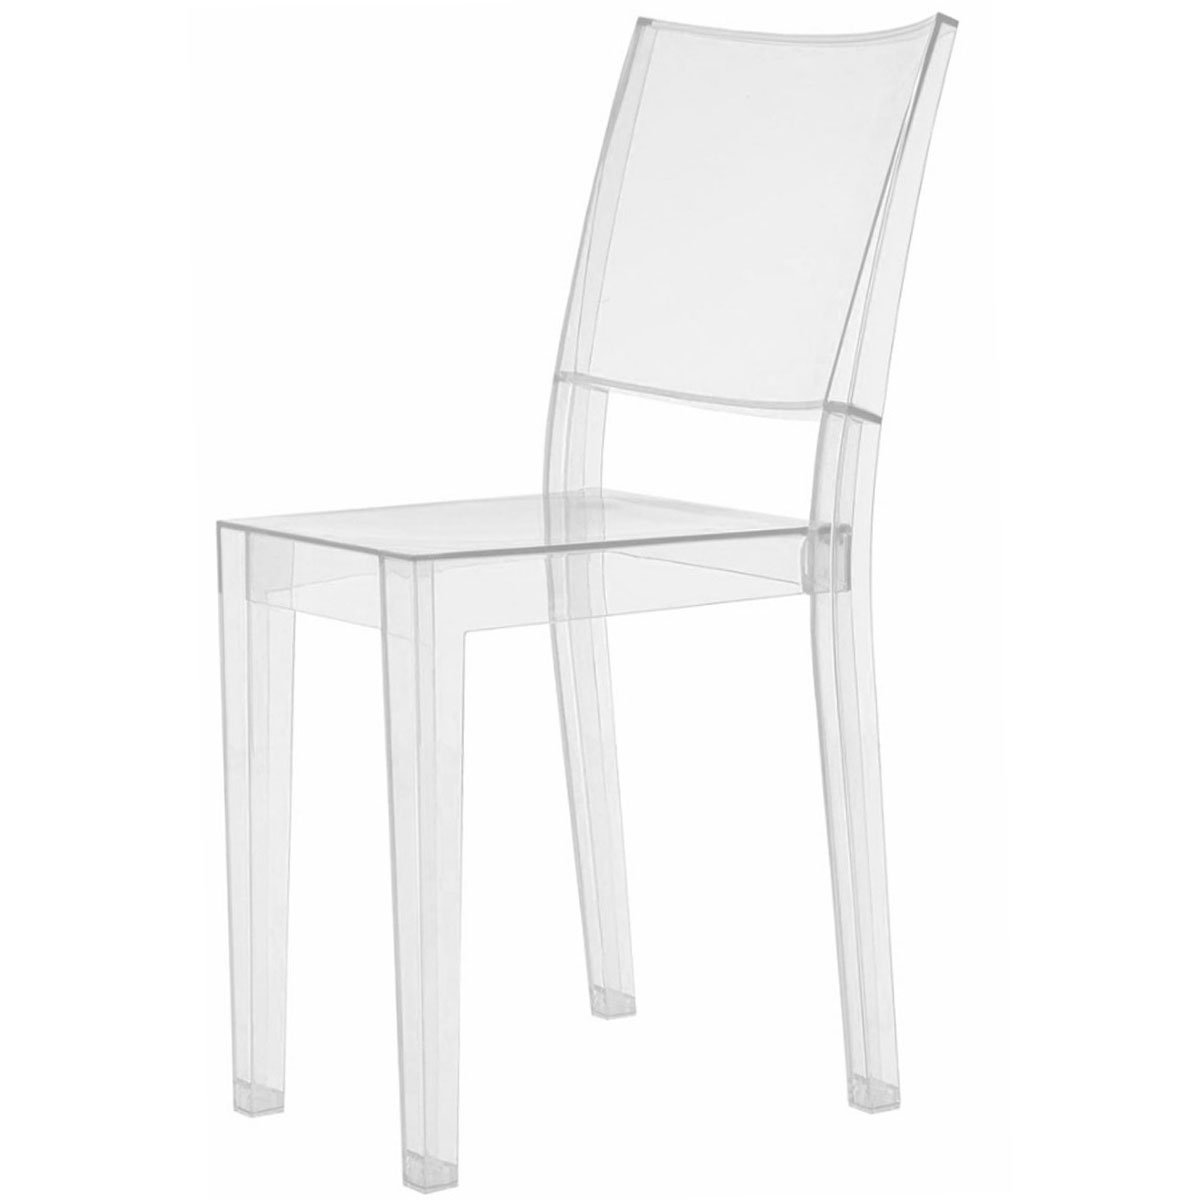 Kartell 4850B4 Chair La Marie Clear: Amazon.co.uk: Kitchen & Home